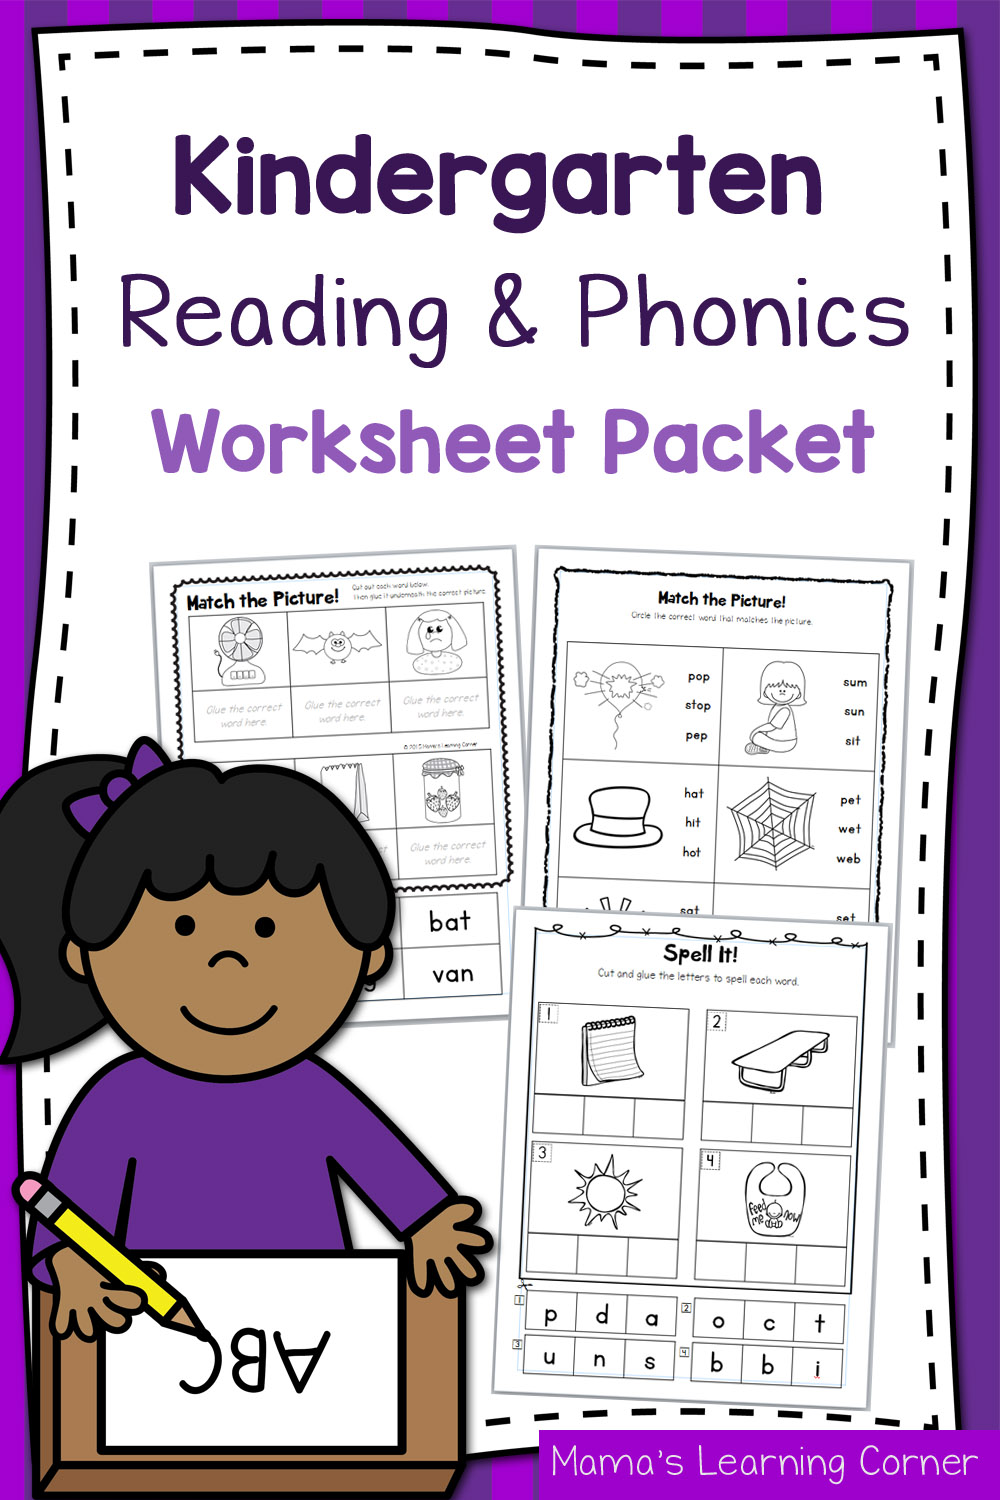 - Kindergarten Reading And Phonics Worksheet Packet - Mamas Learning